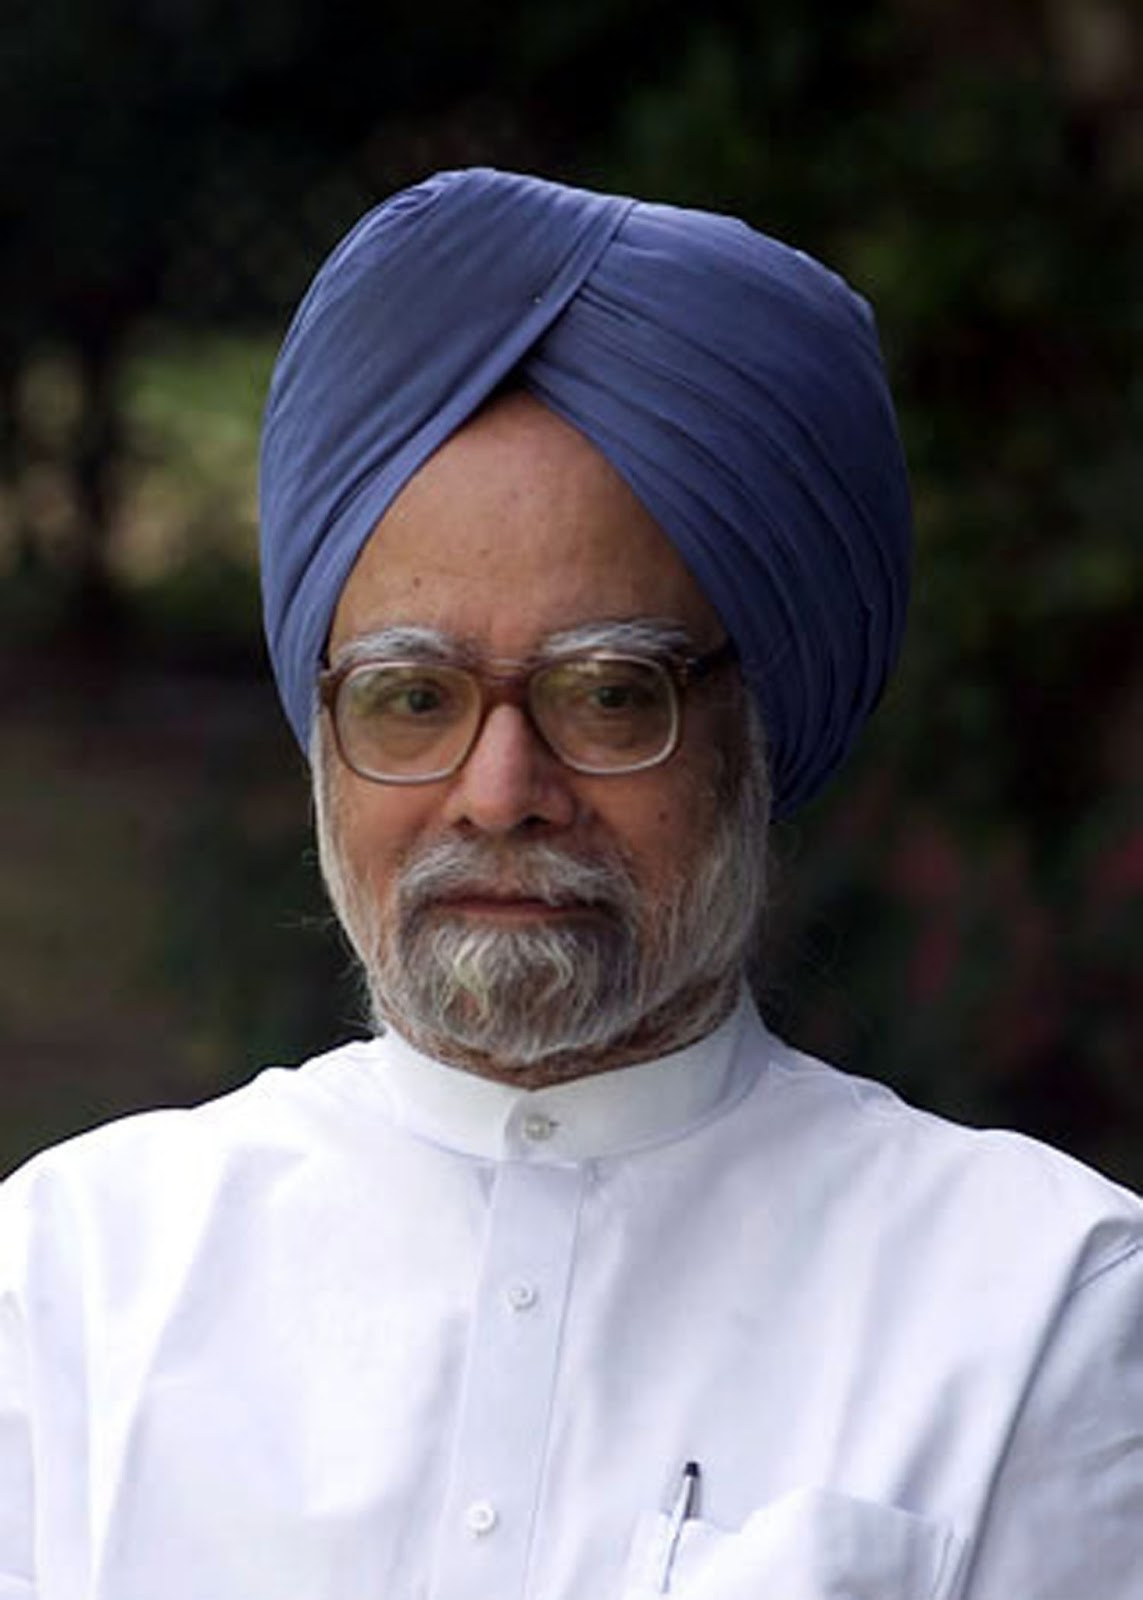 manmohan singh A court in india summons former prime minister manmohan singh over a corruption scandal involving coal mining licenses.